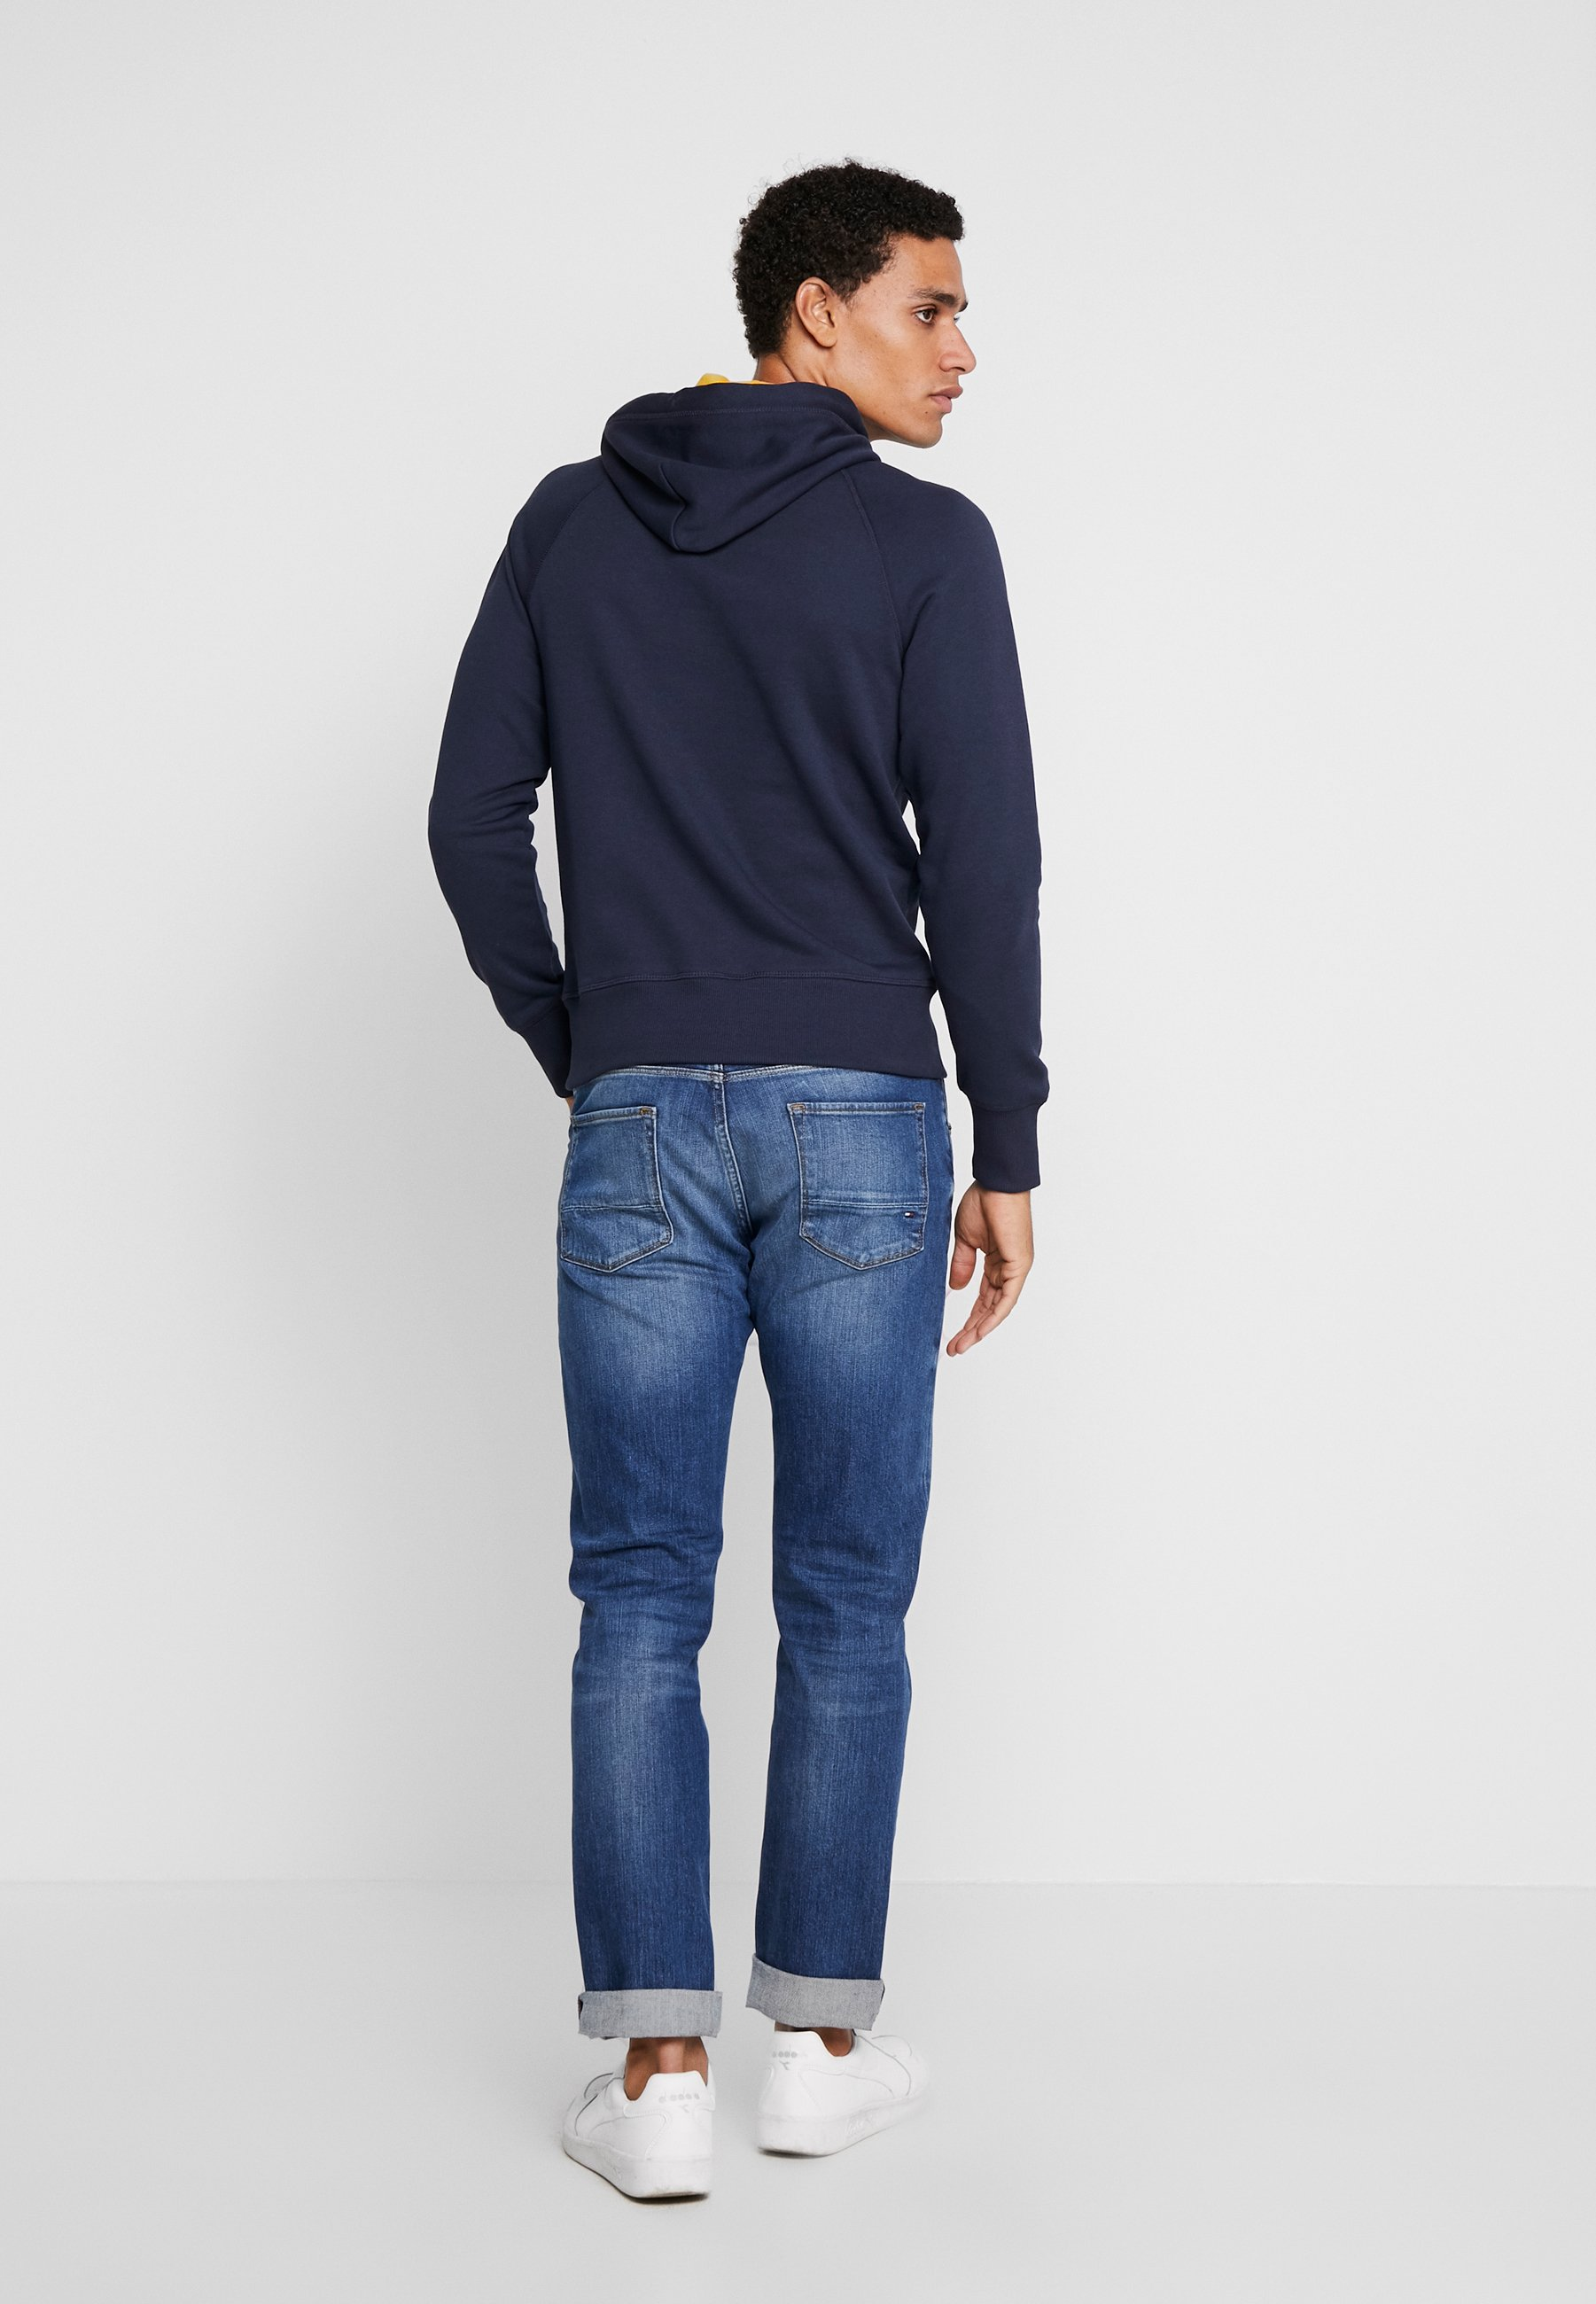 À Capuche Evening Blue Graphic Gant HoodieSweat rdoBxeC